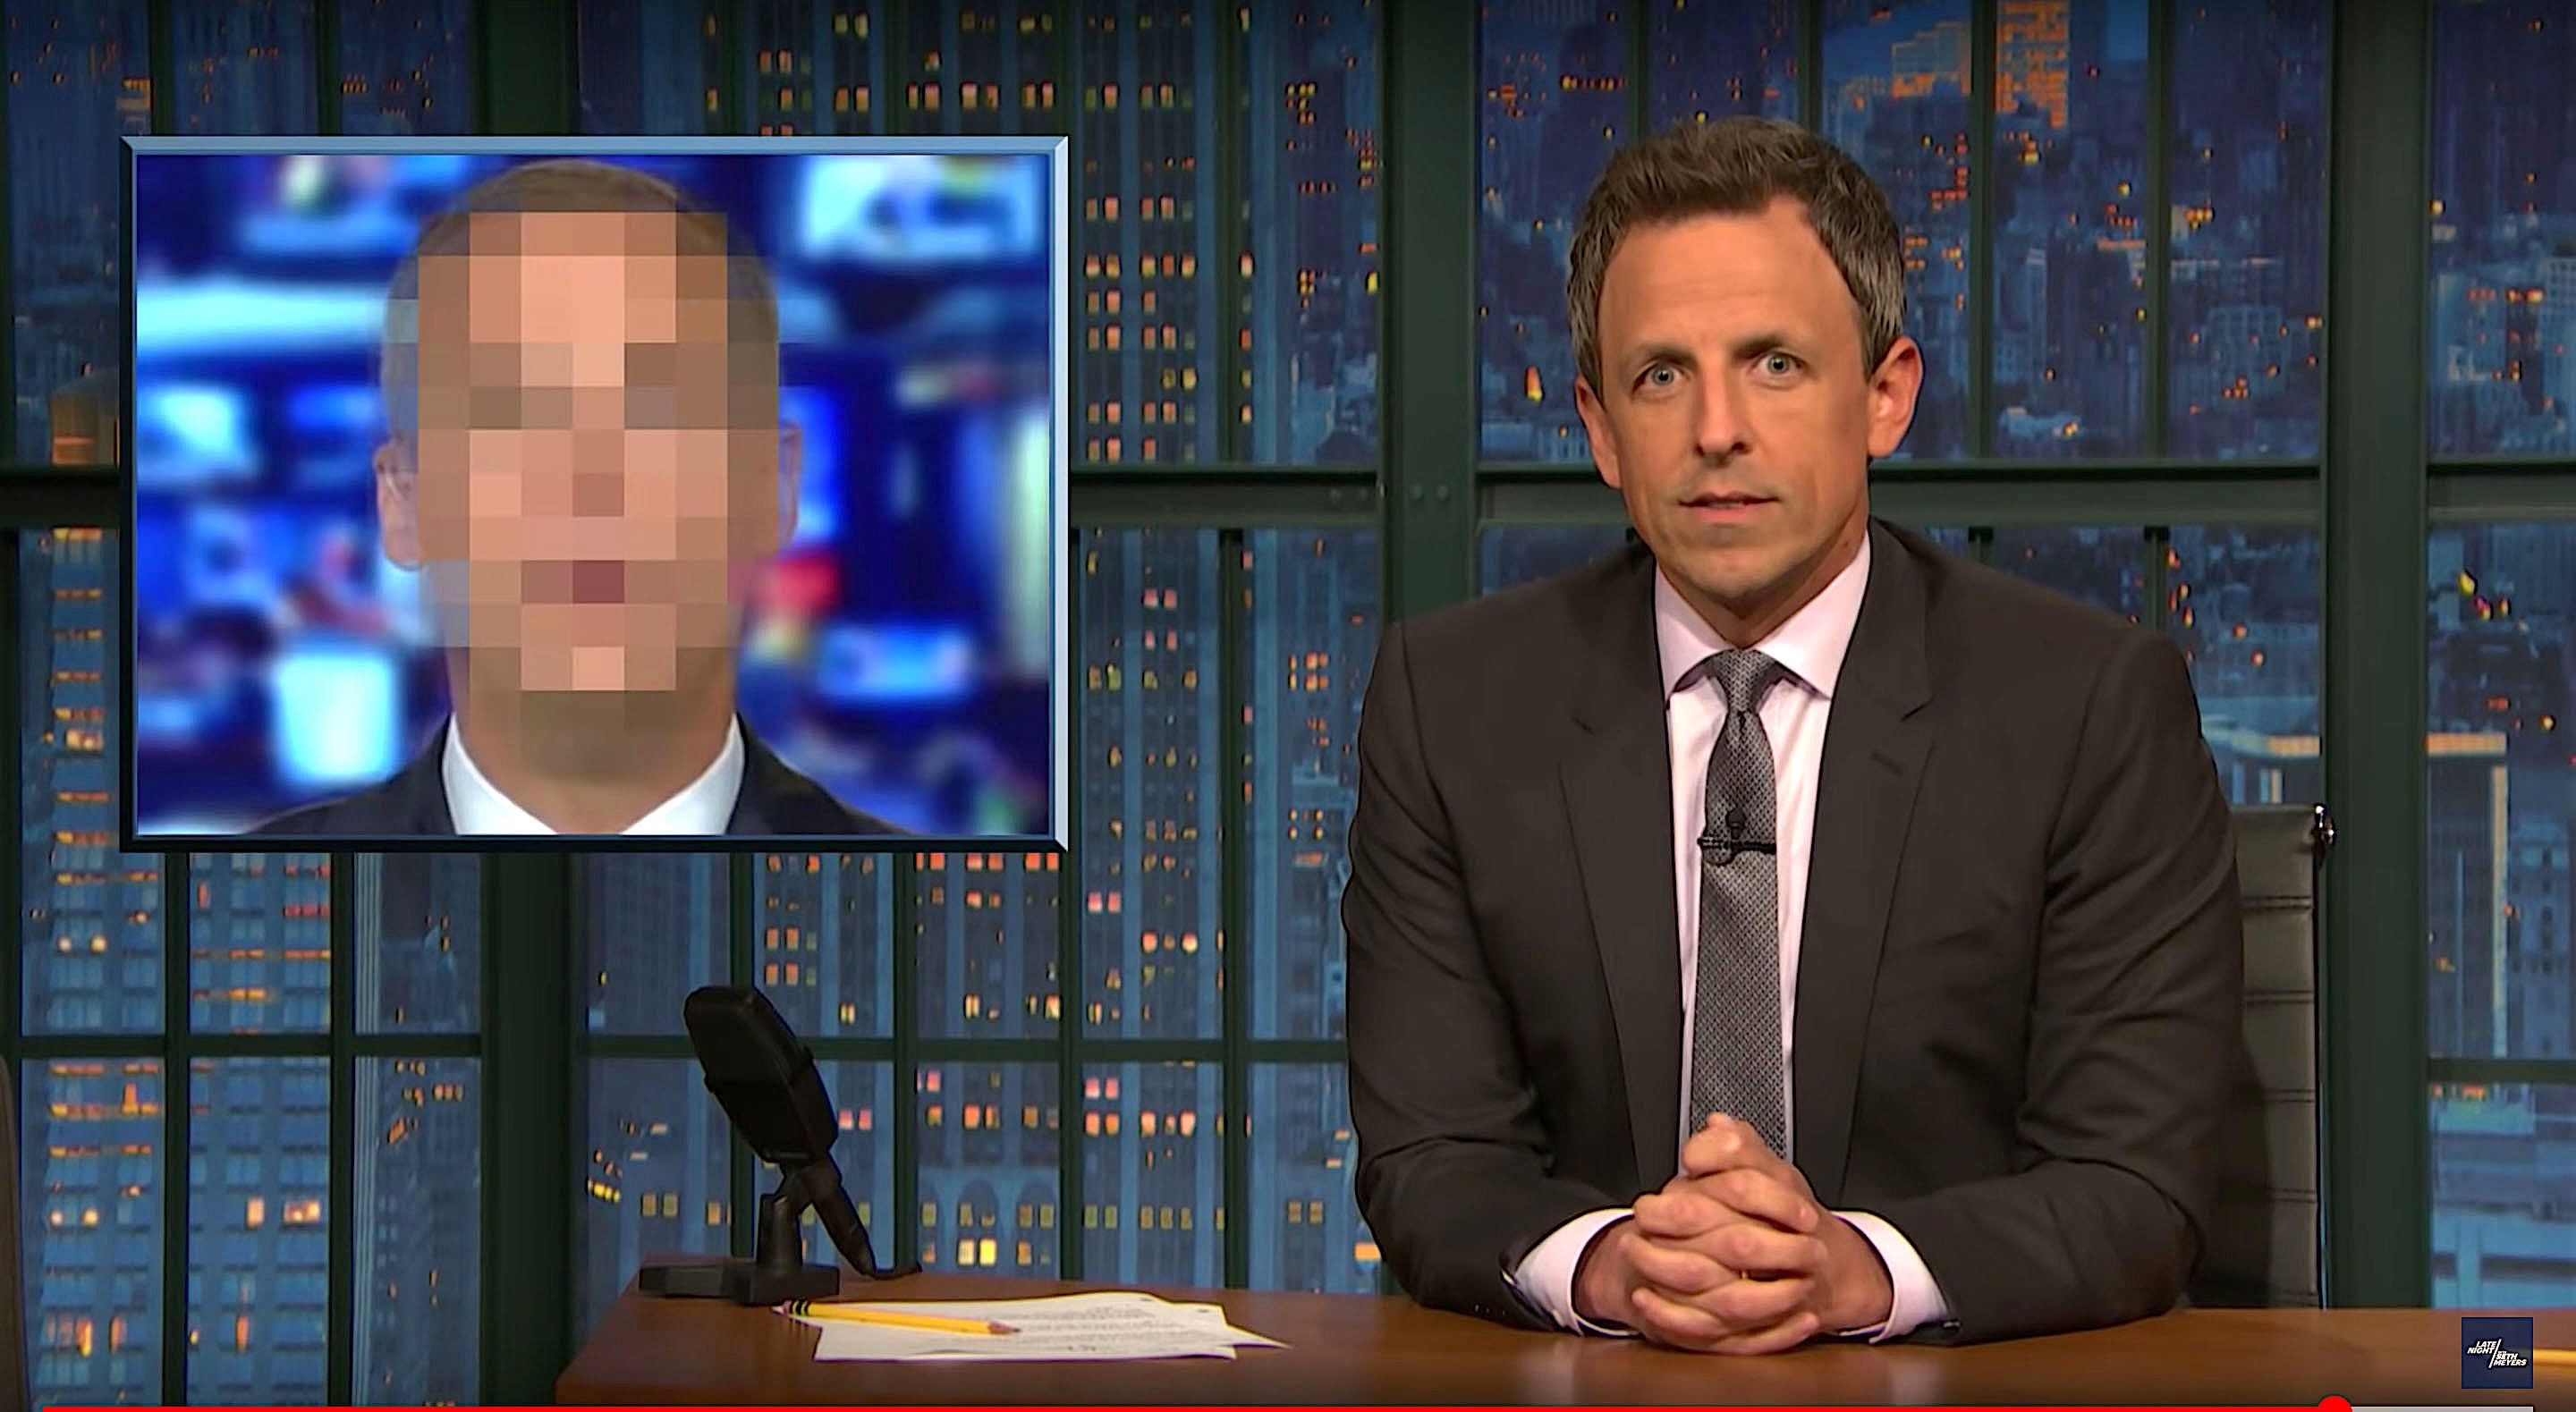 Seth Meyers of Late Night calls out the liars